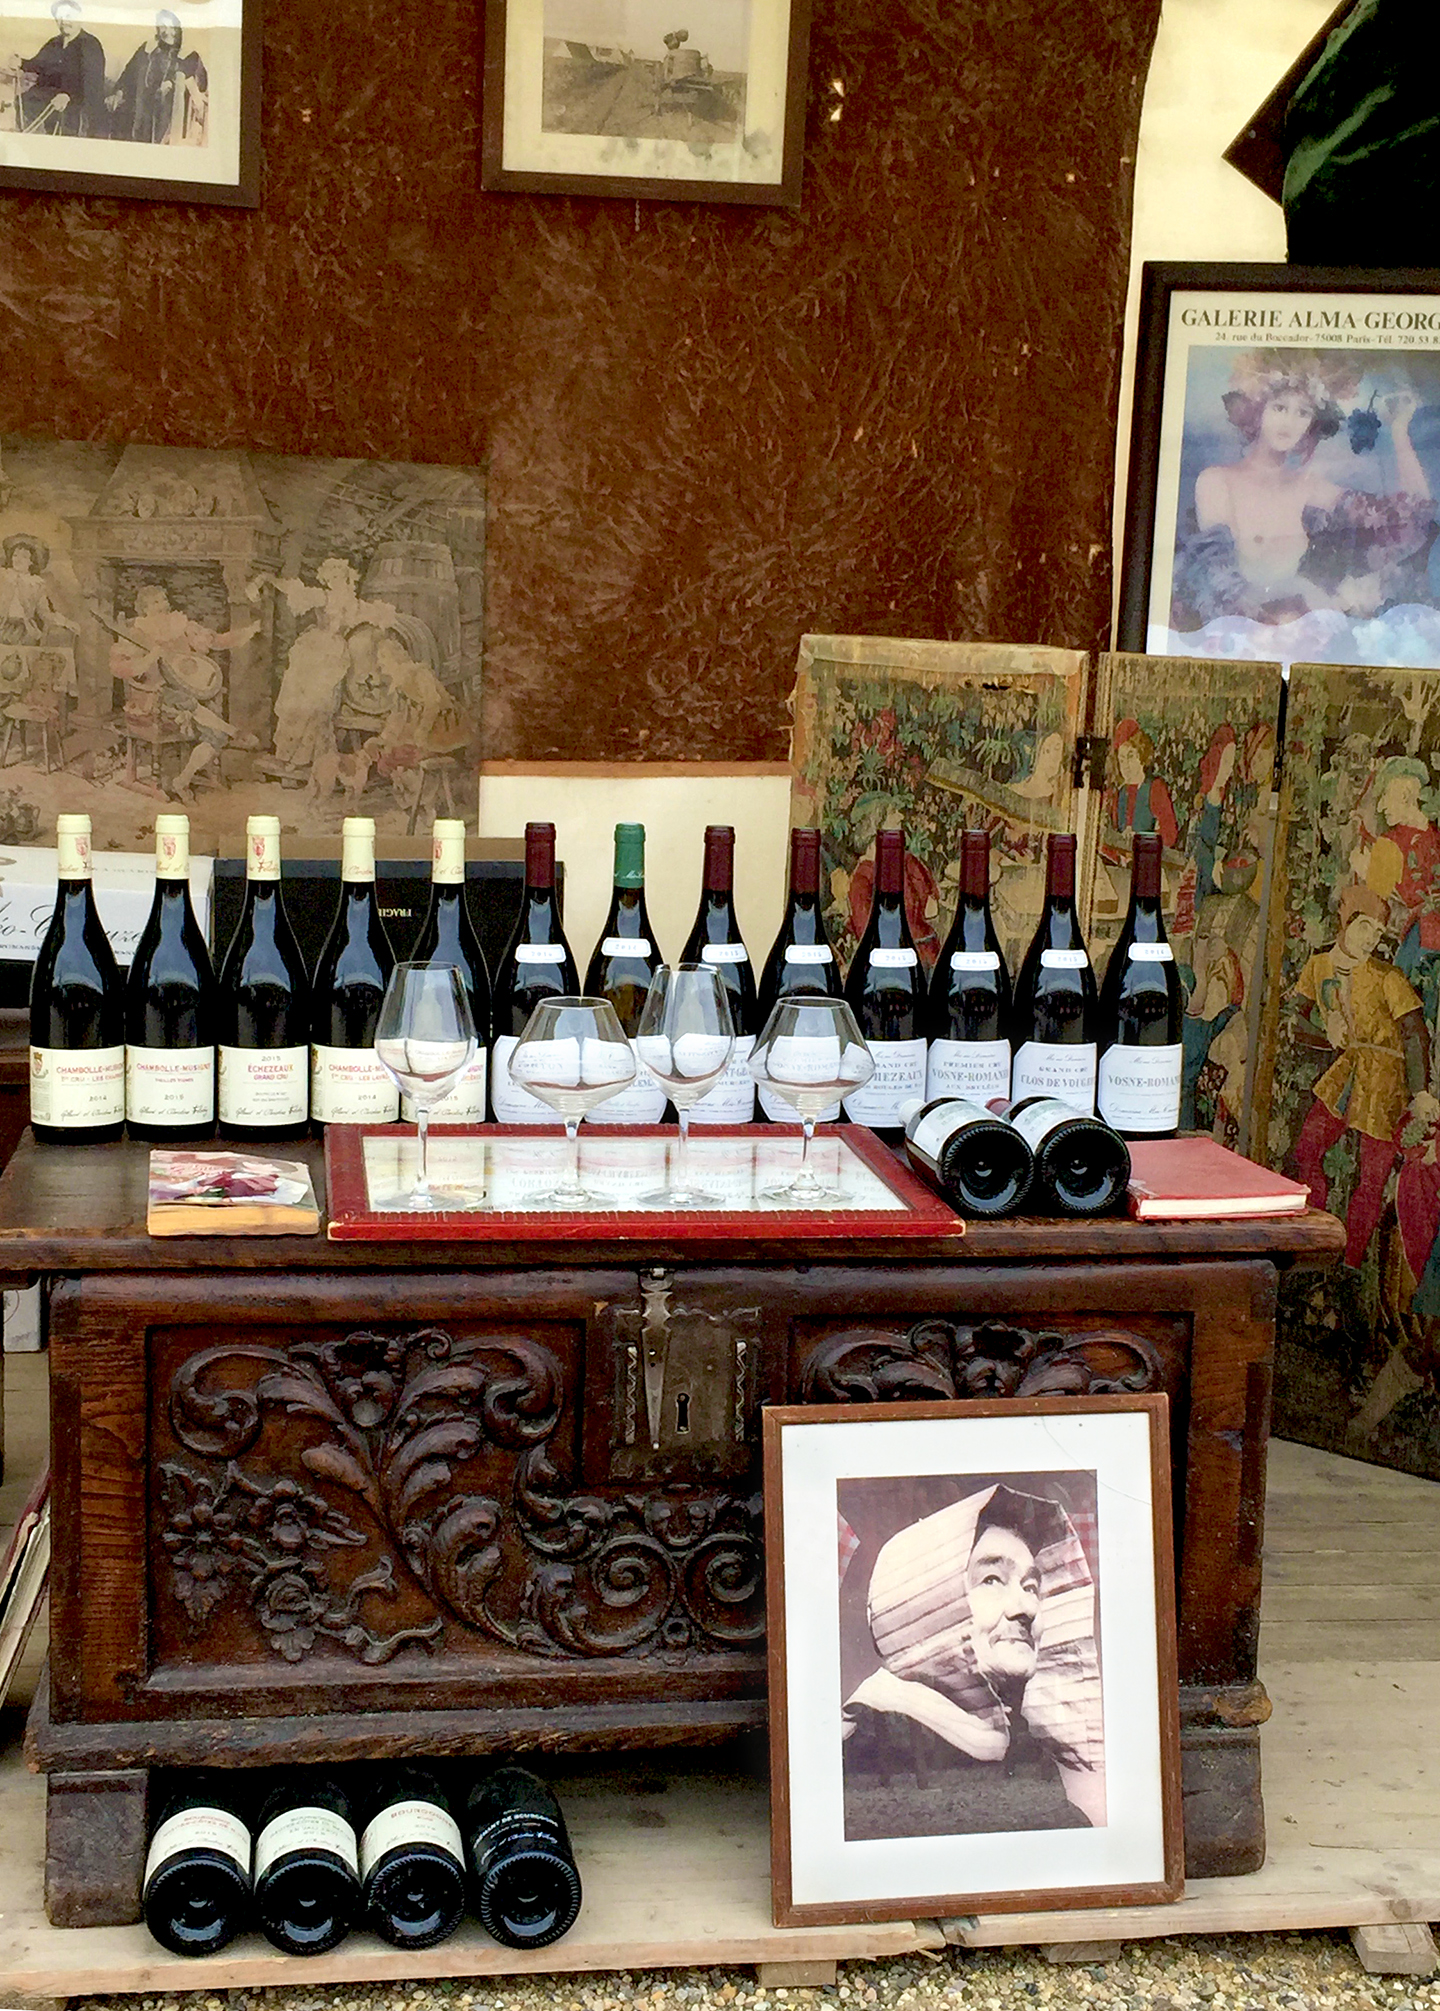 Wines from Burgundy!